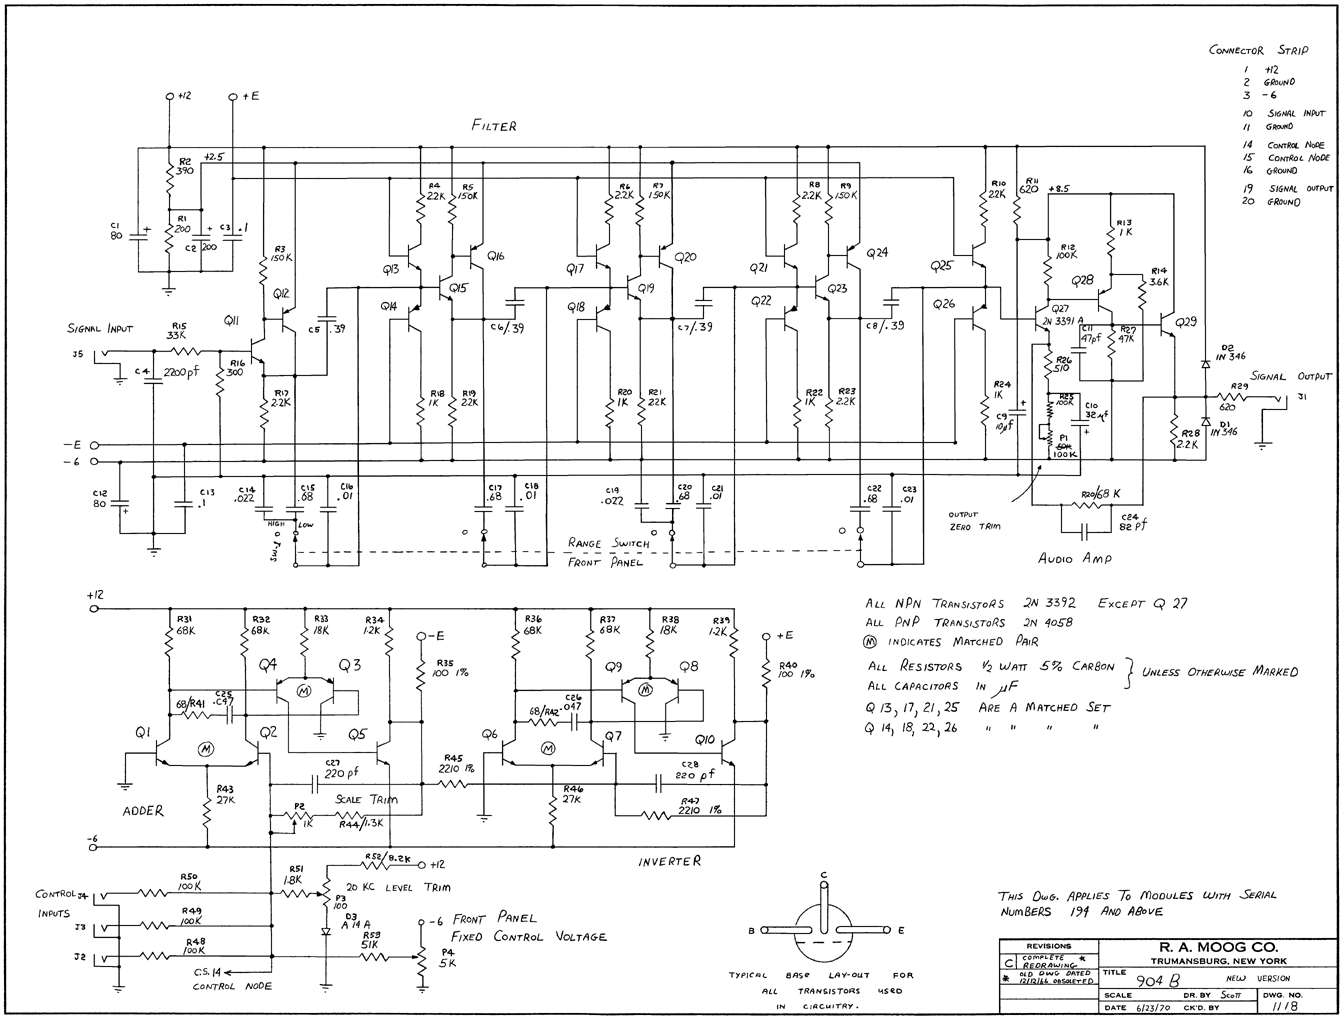 synthesizer schematics user and service manuals rh hylander com User Manual Template iPad Manual